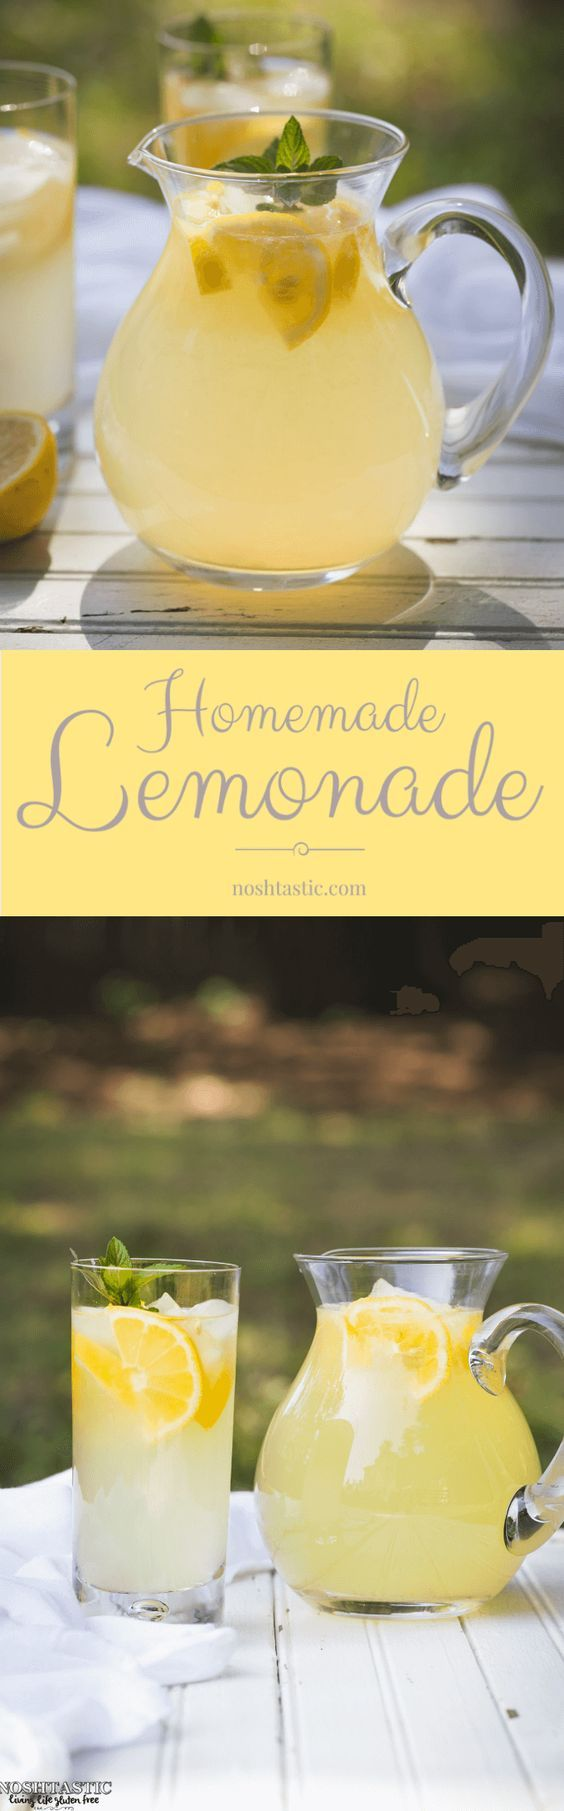 This fresh squeezed Lemonade recipe will blow your mind, you'll never go back to store bought!   from noshtastic.com  